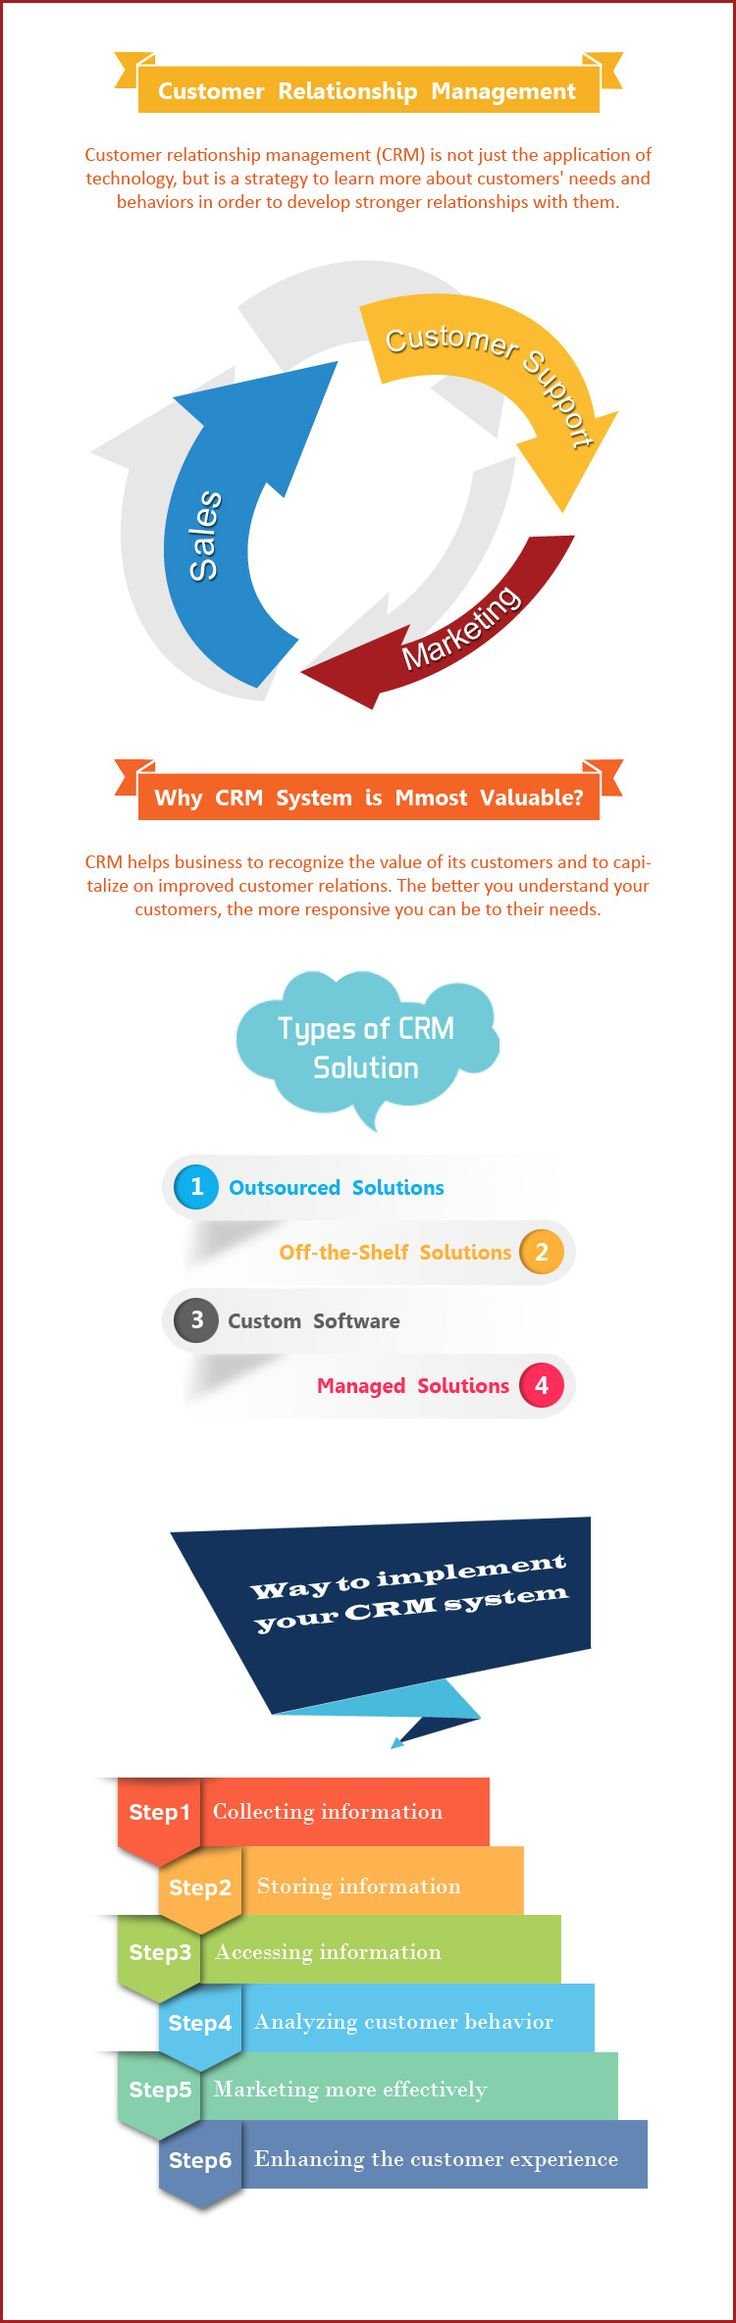 CRM helps business to recognize the value of its customers and to capitalize on improved customer relations.